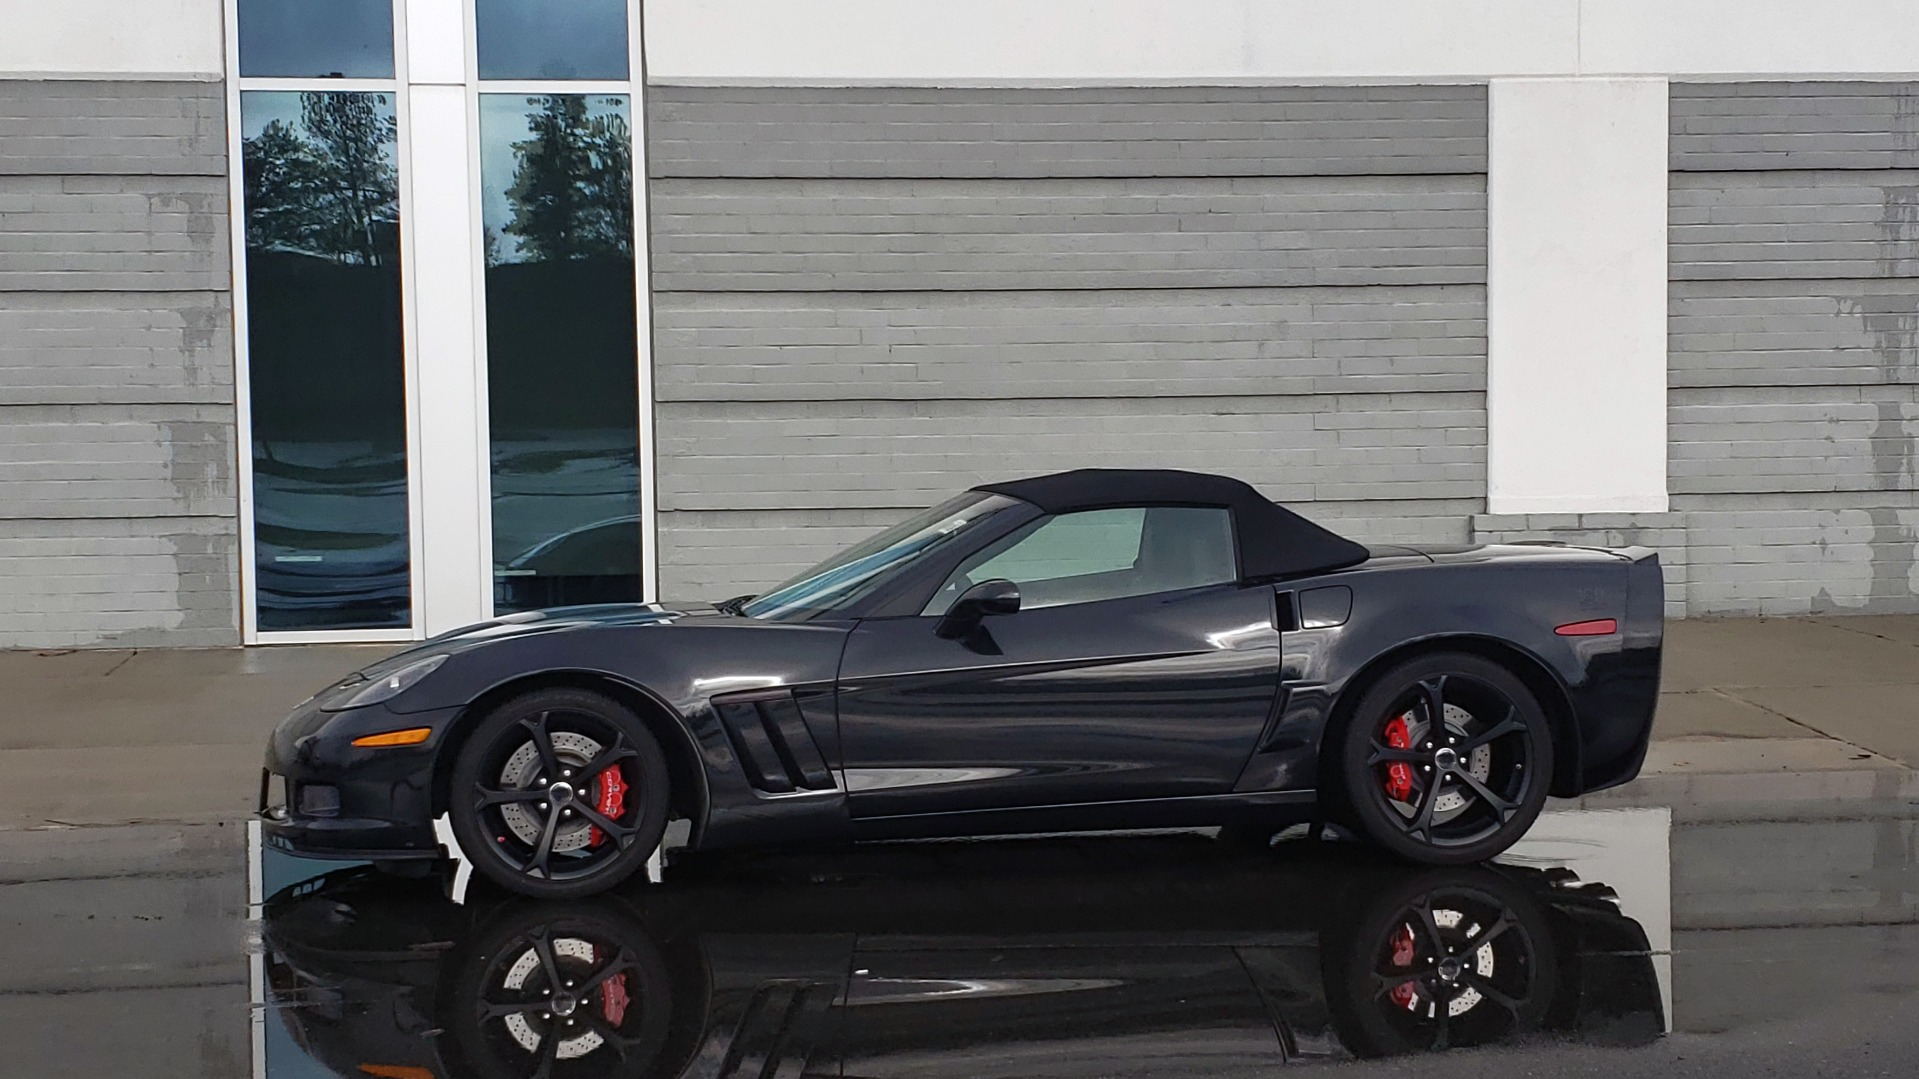 Used 2012 Chevrolet CORVETTE Z16 GRAND SPORT 3LT CONVERTIBLE / 6-SPD AUTO / NAV for sale Sold at Formula Imports in Charlotte NC 28227 3